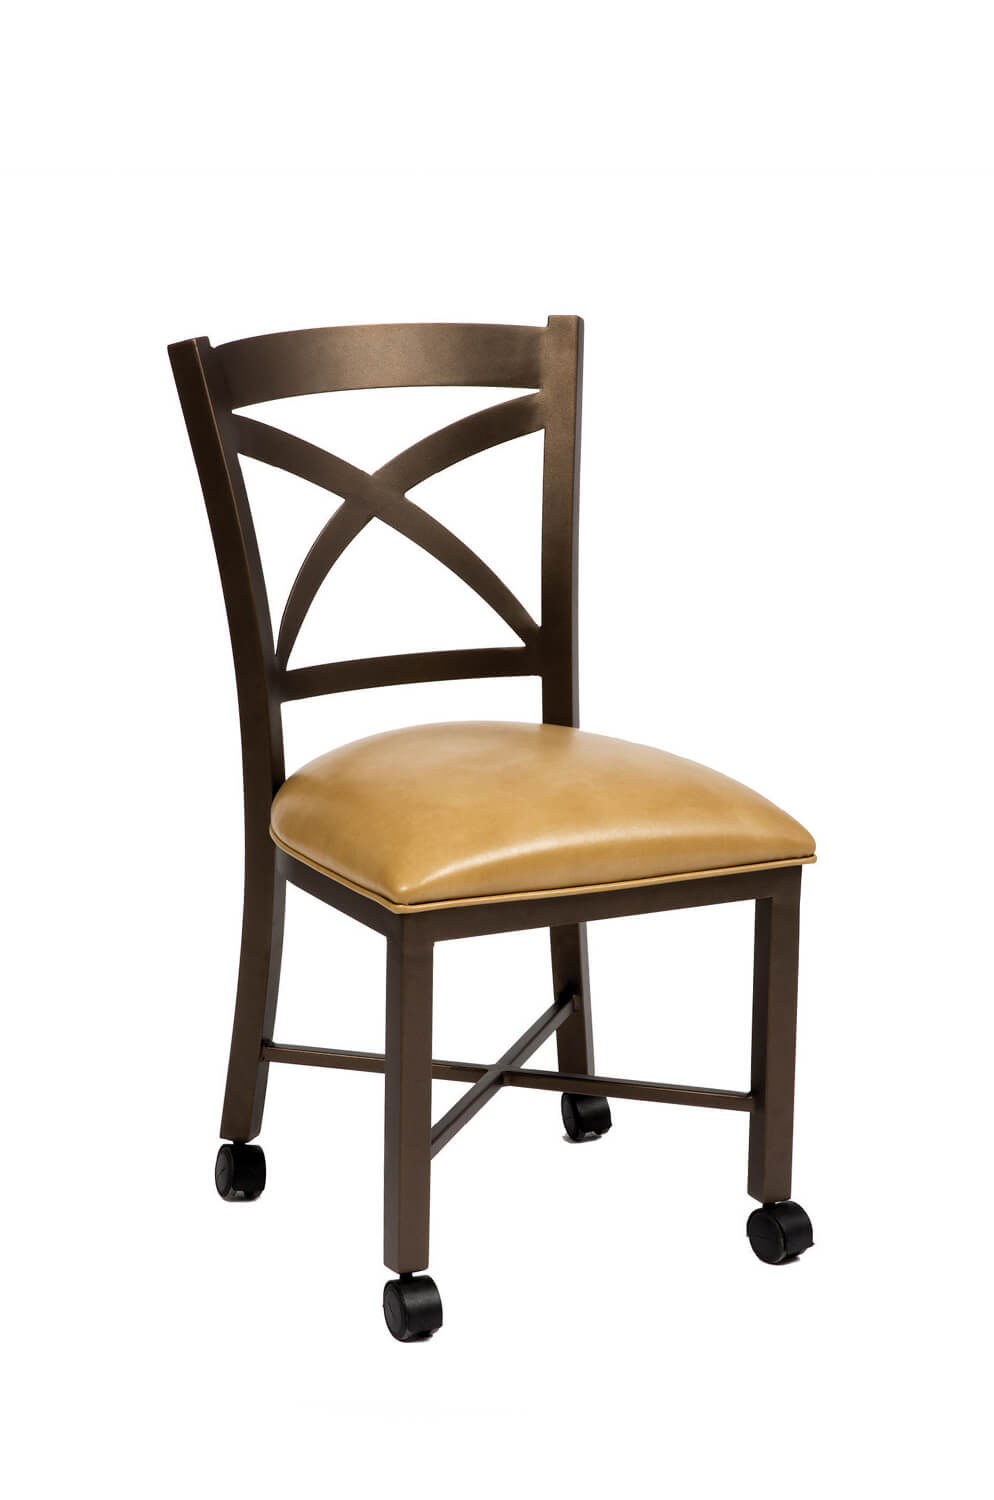 Edmonton Dining Chair with Casters